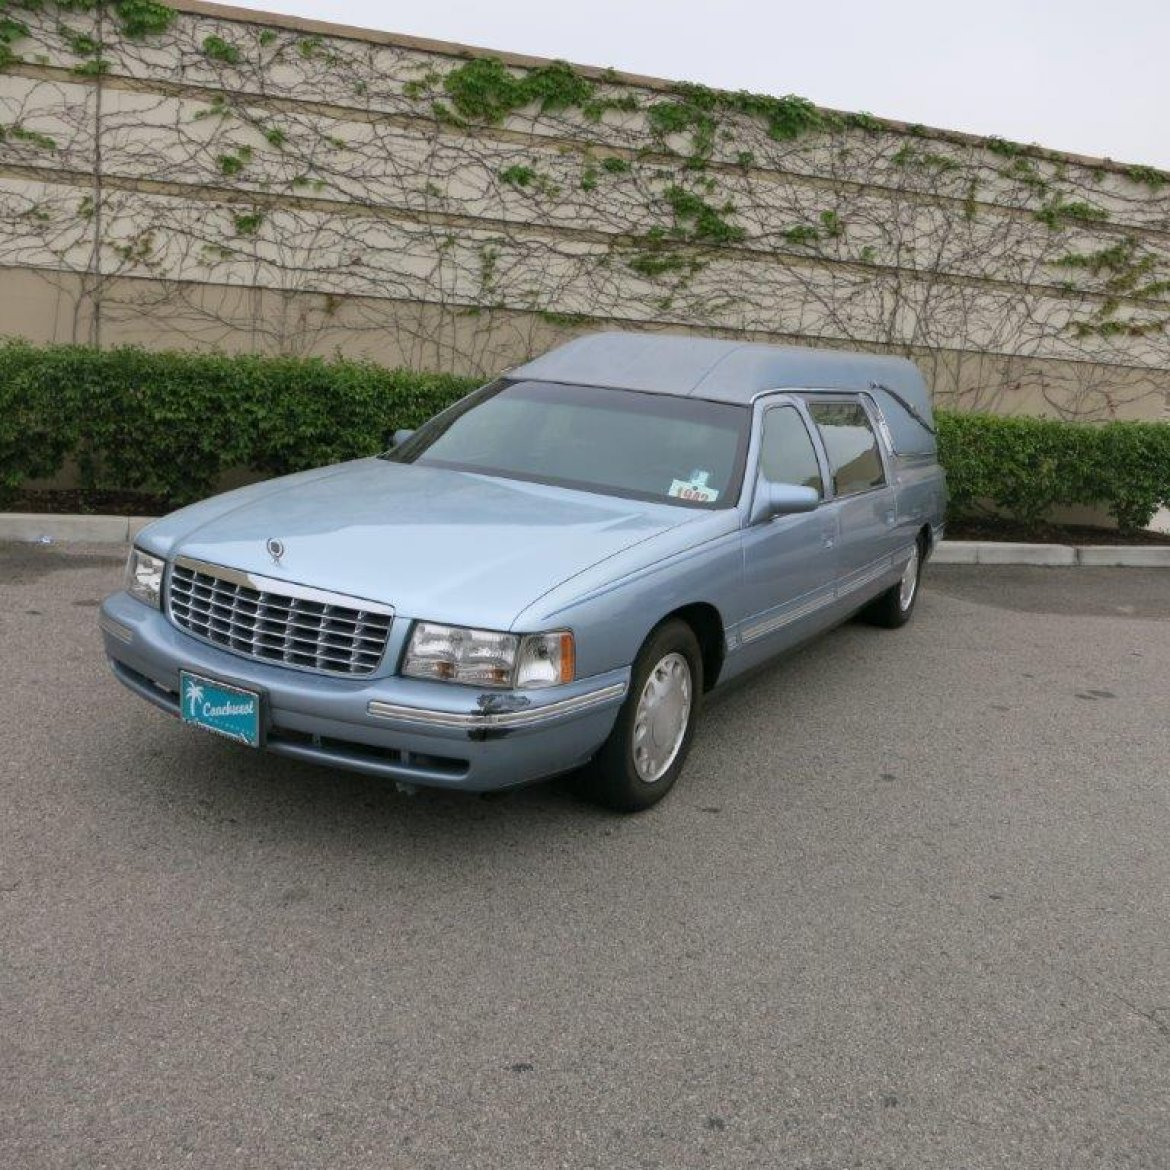 Used 1998 Cadillac Renaissance For Sale #WS-10650